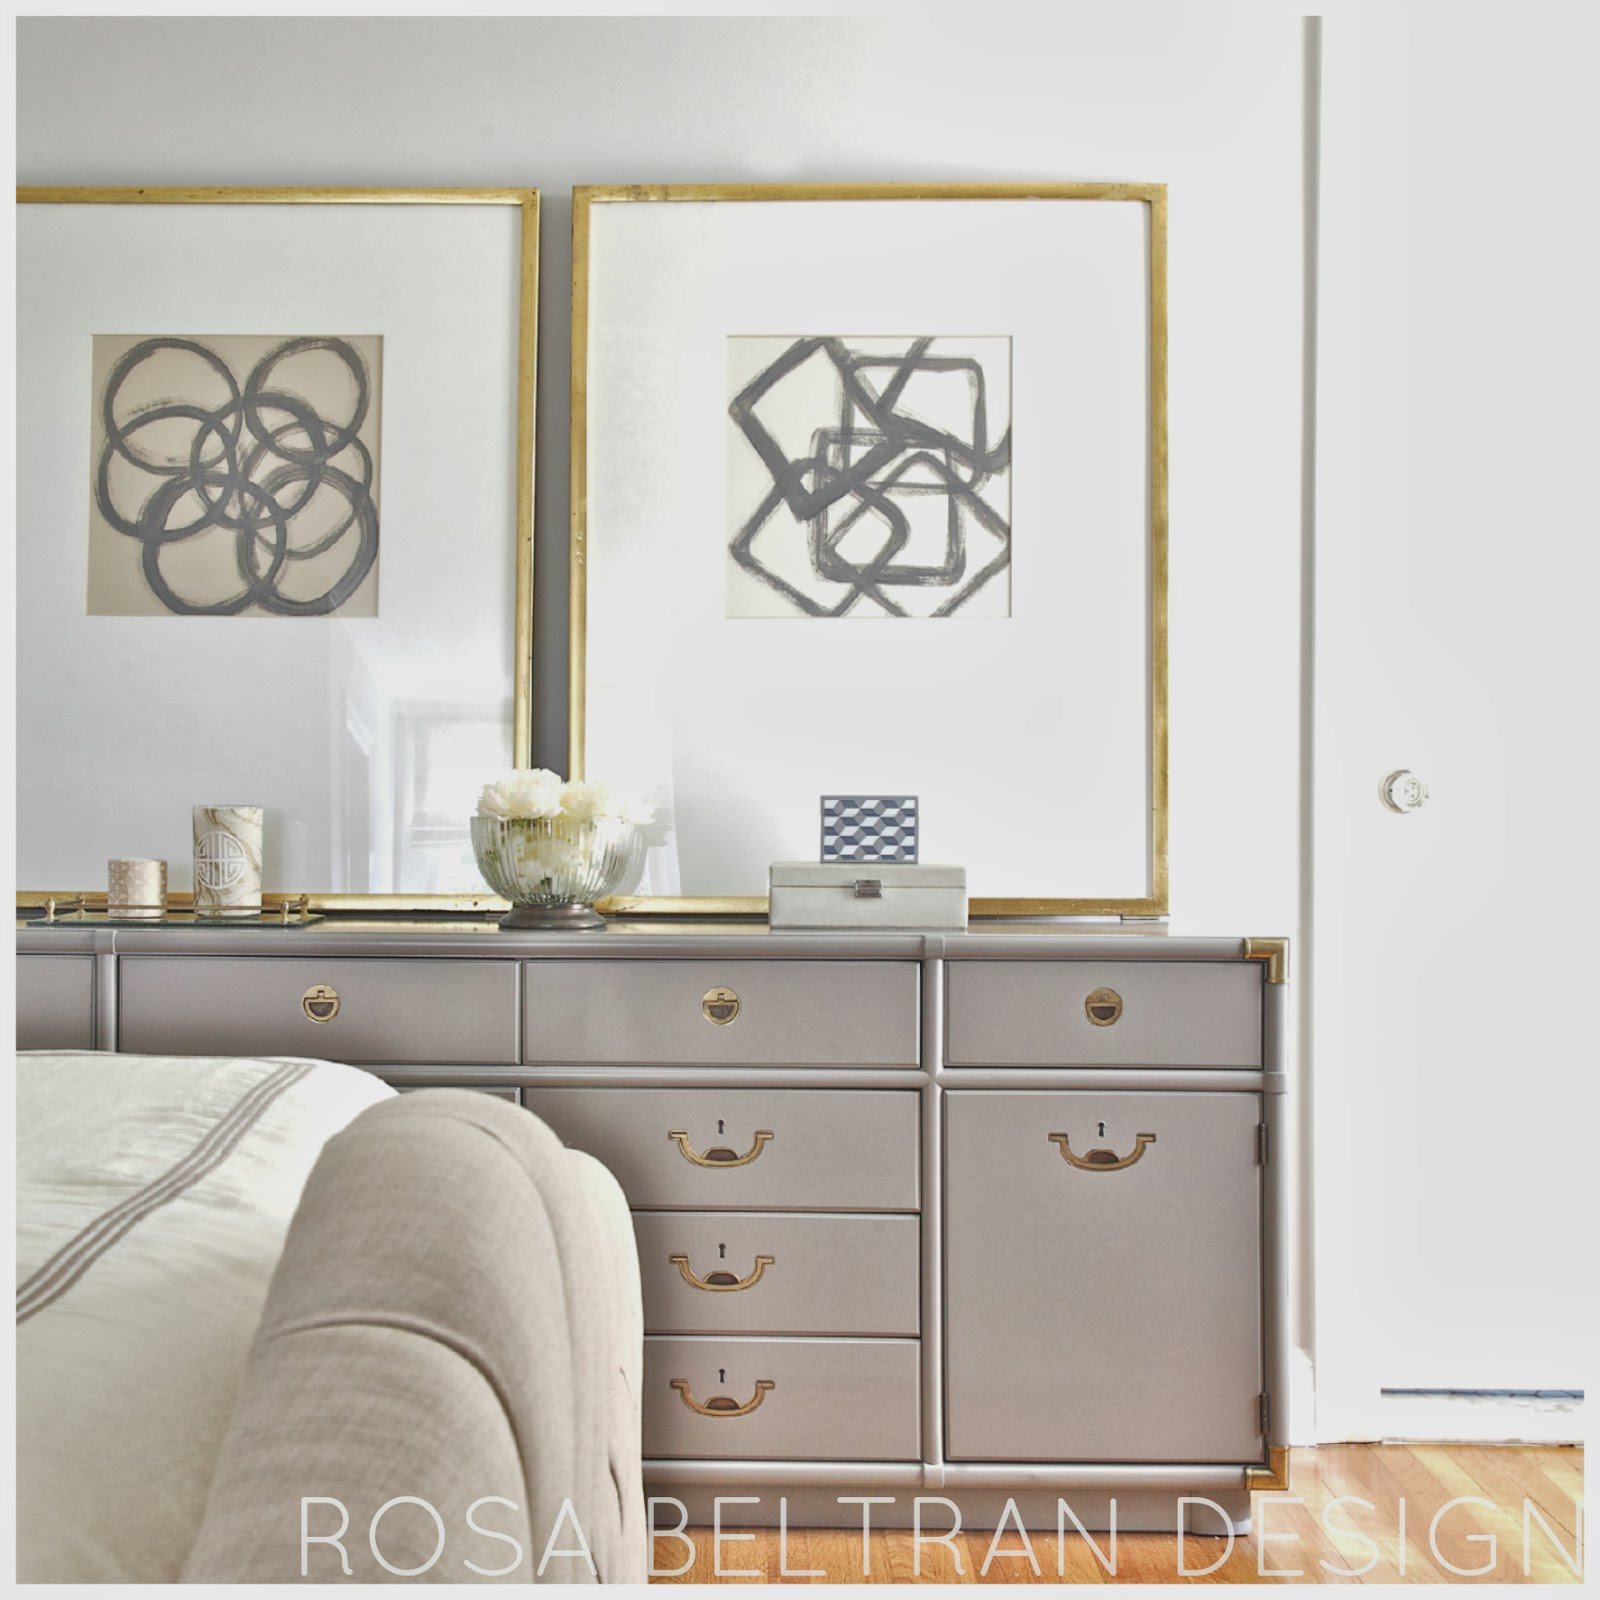 Rosa beltran design diy wall art series modern abstracts for Designer wall art